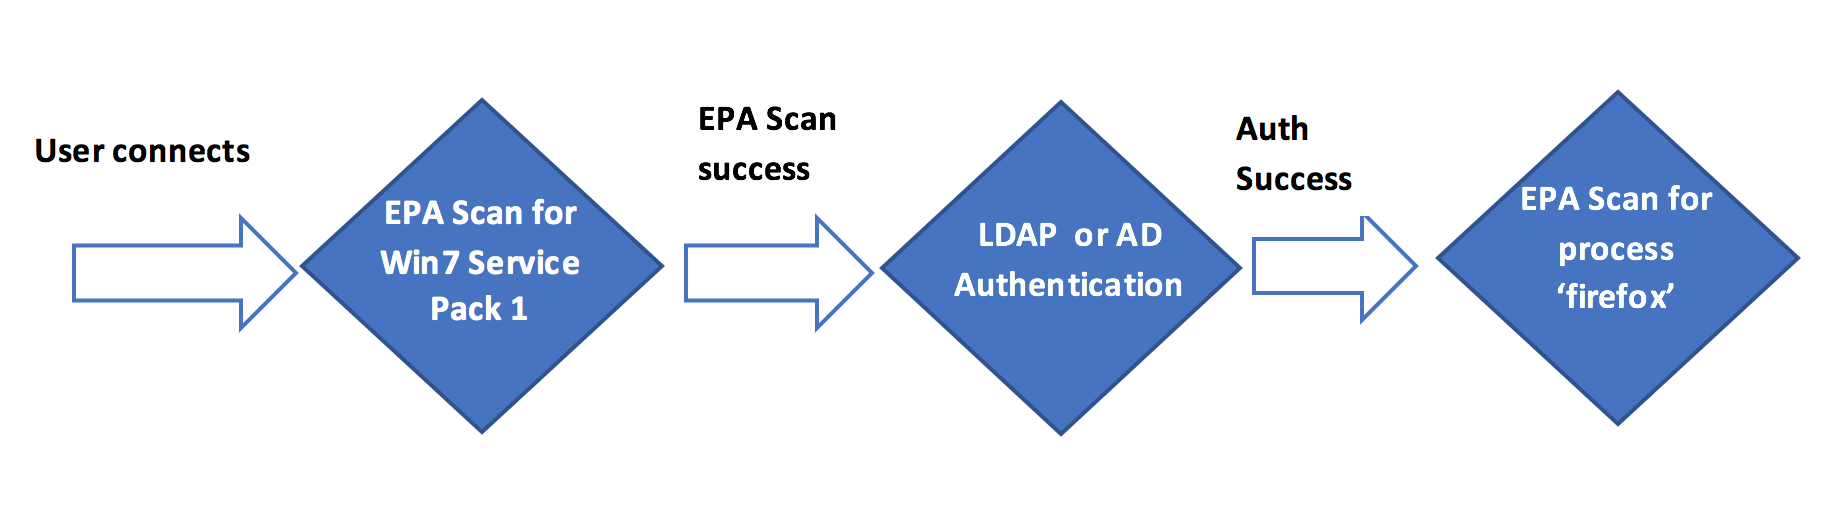 Representation of EPA scan used as initial check in nFactor or multifactor authentication